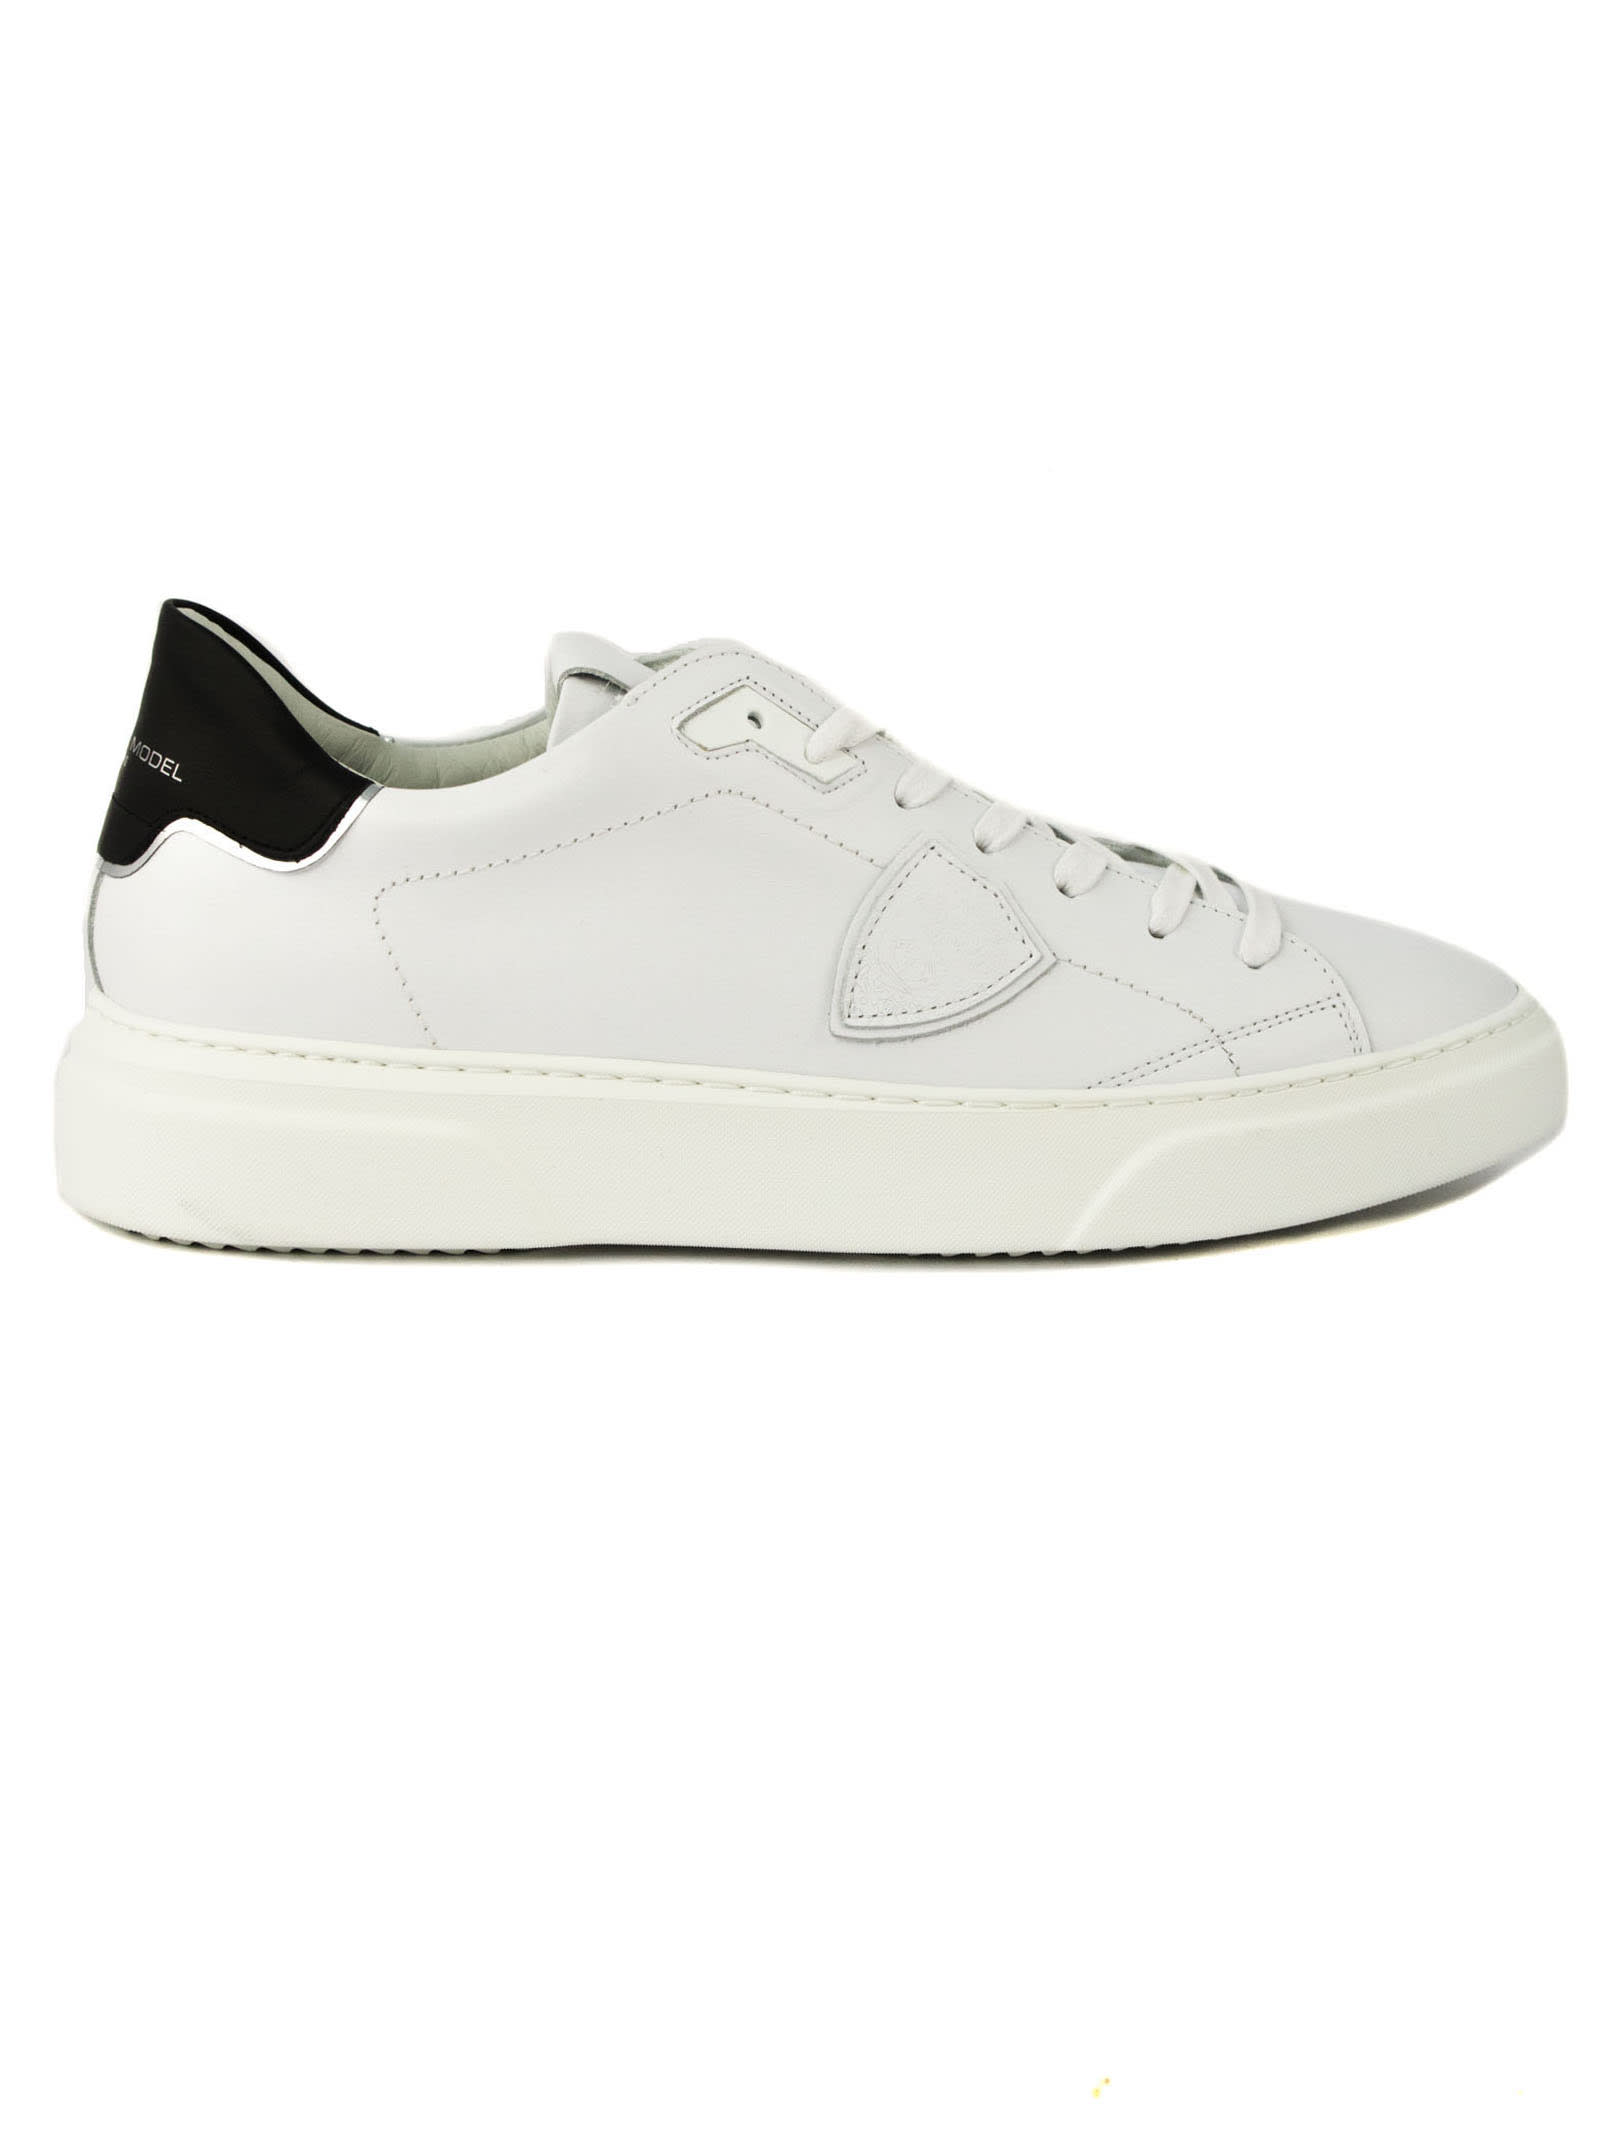 Philippe Model White Temple S Sneakers